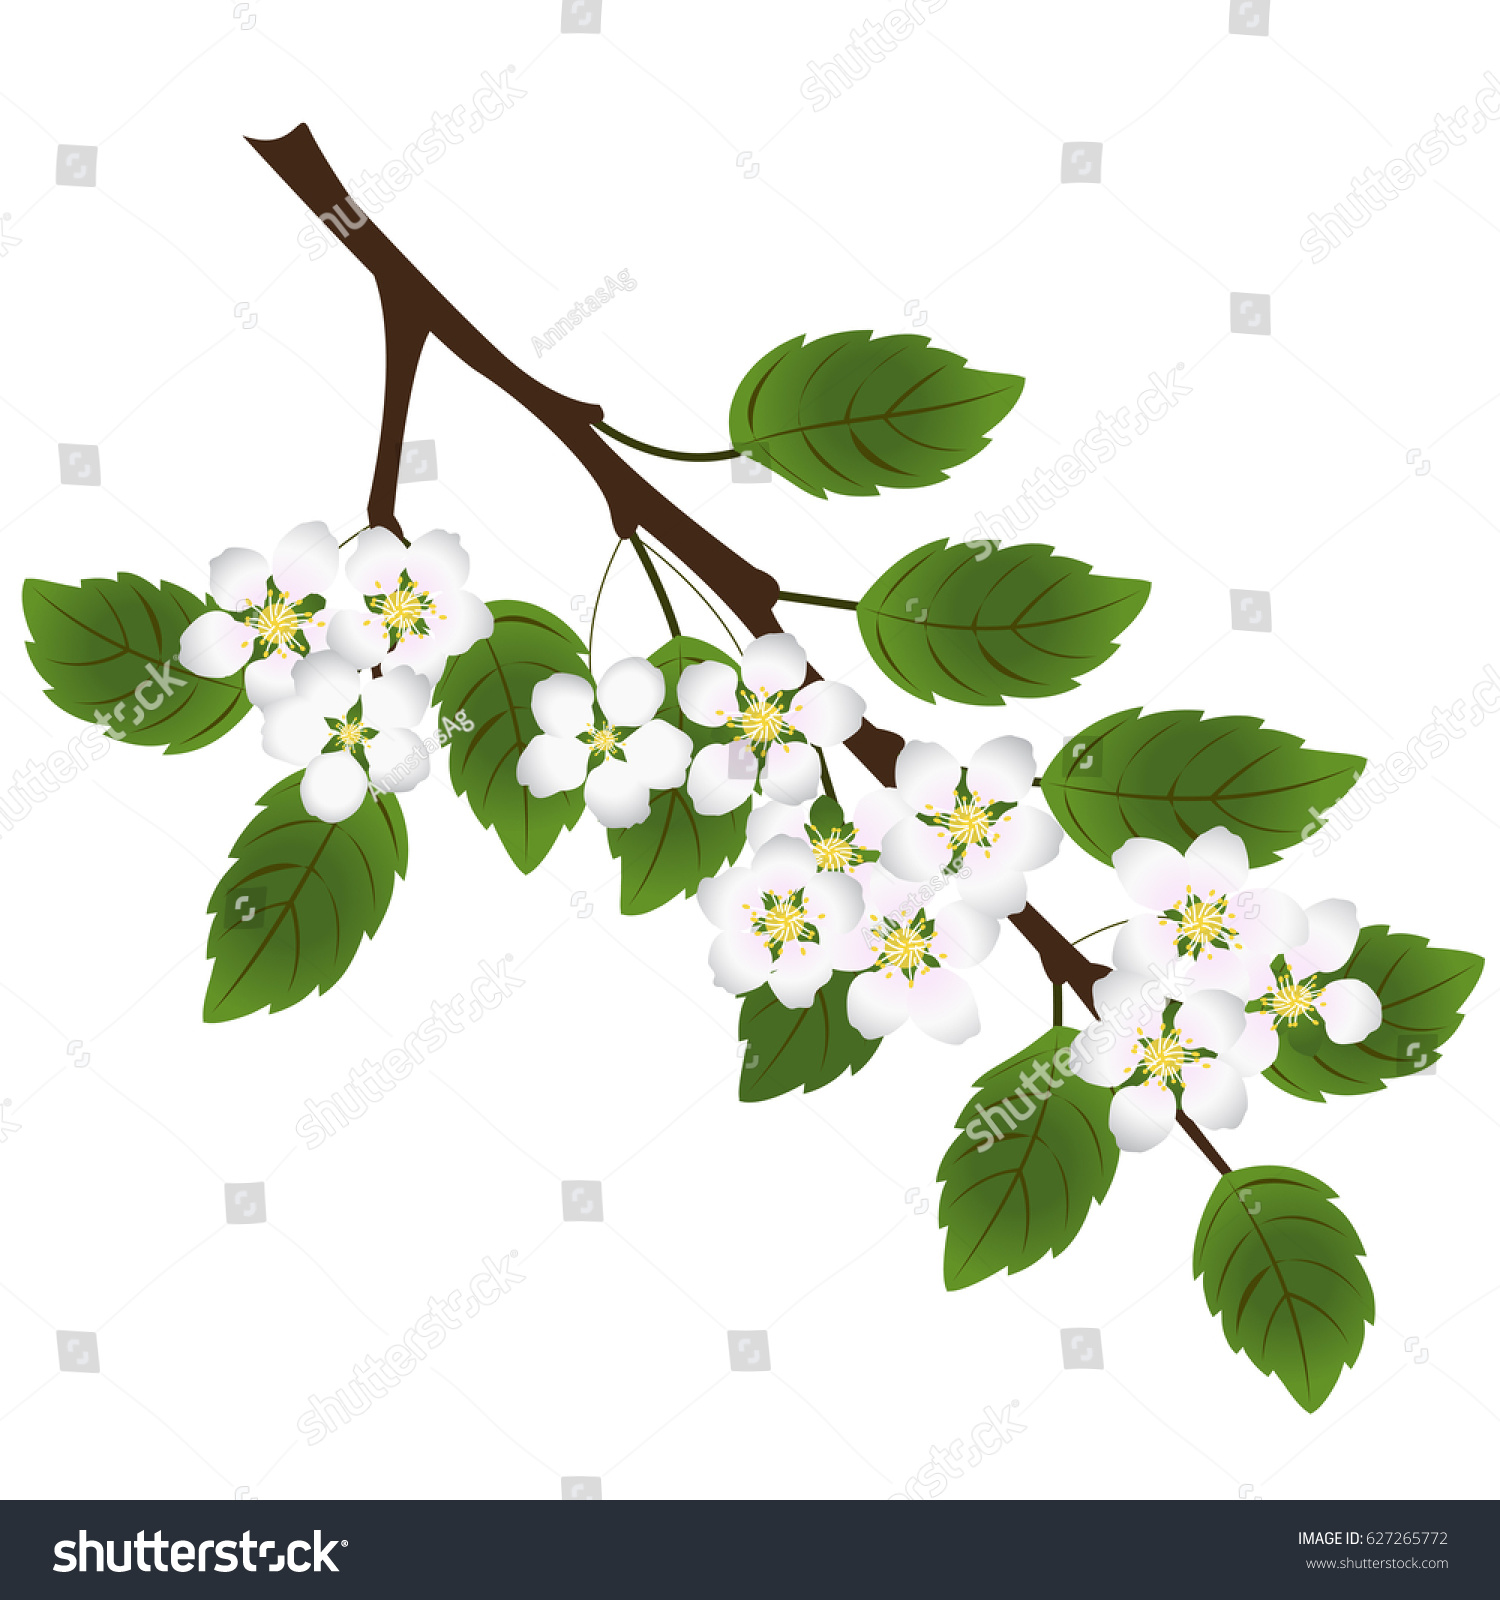 Branch Tree Green Leaves White Flowers Stock Vector Royalty Free